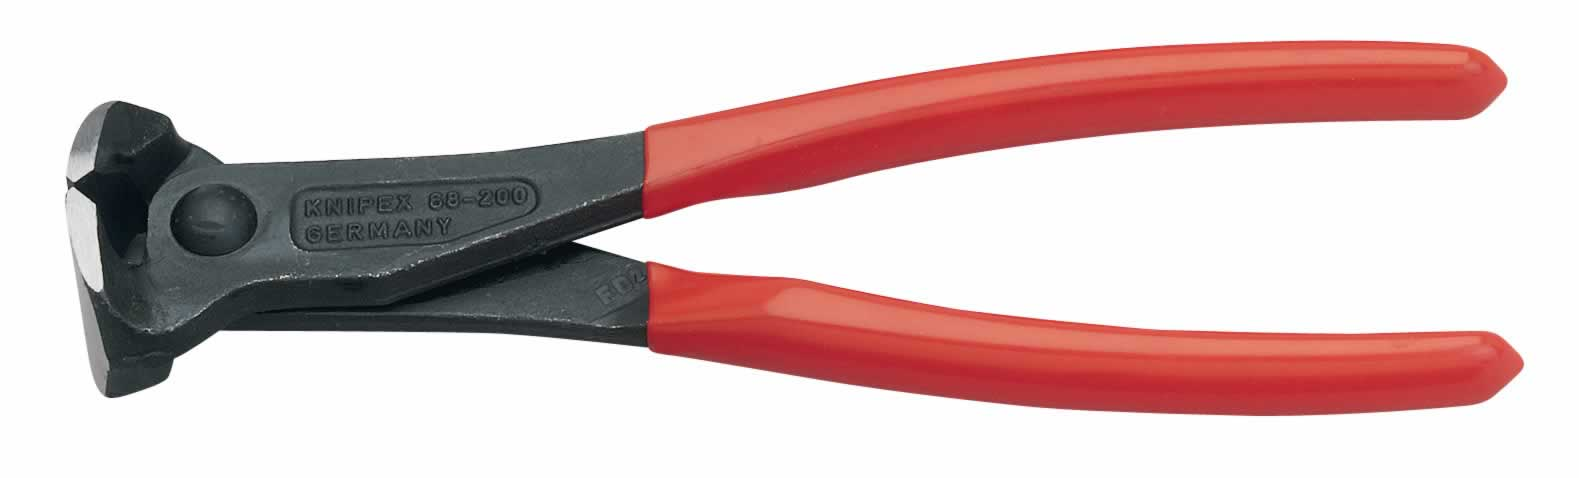 200MM KNIPEX END CUTTING NIPPERS   (G)